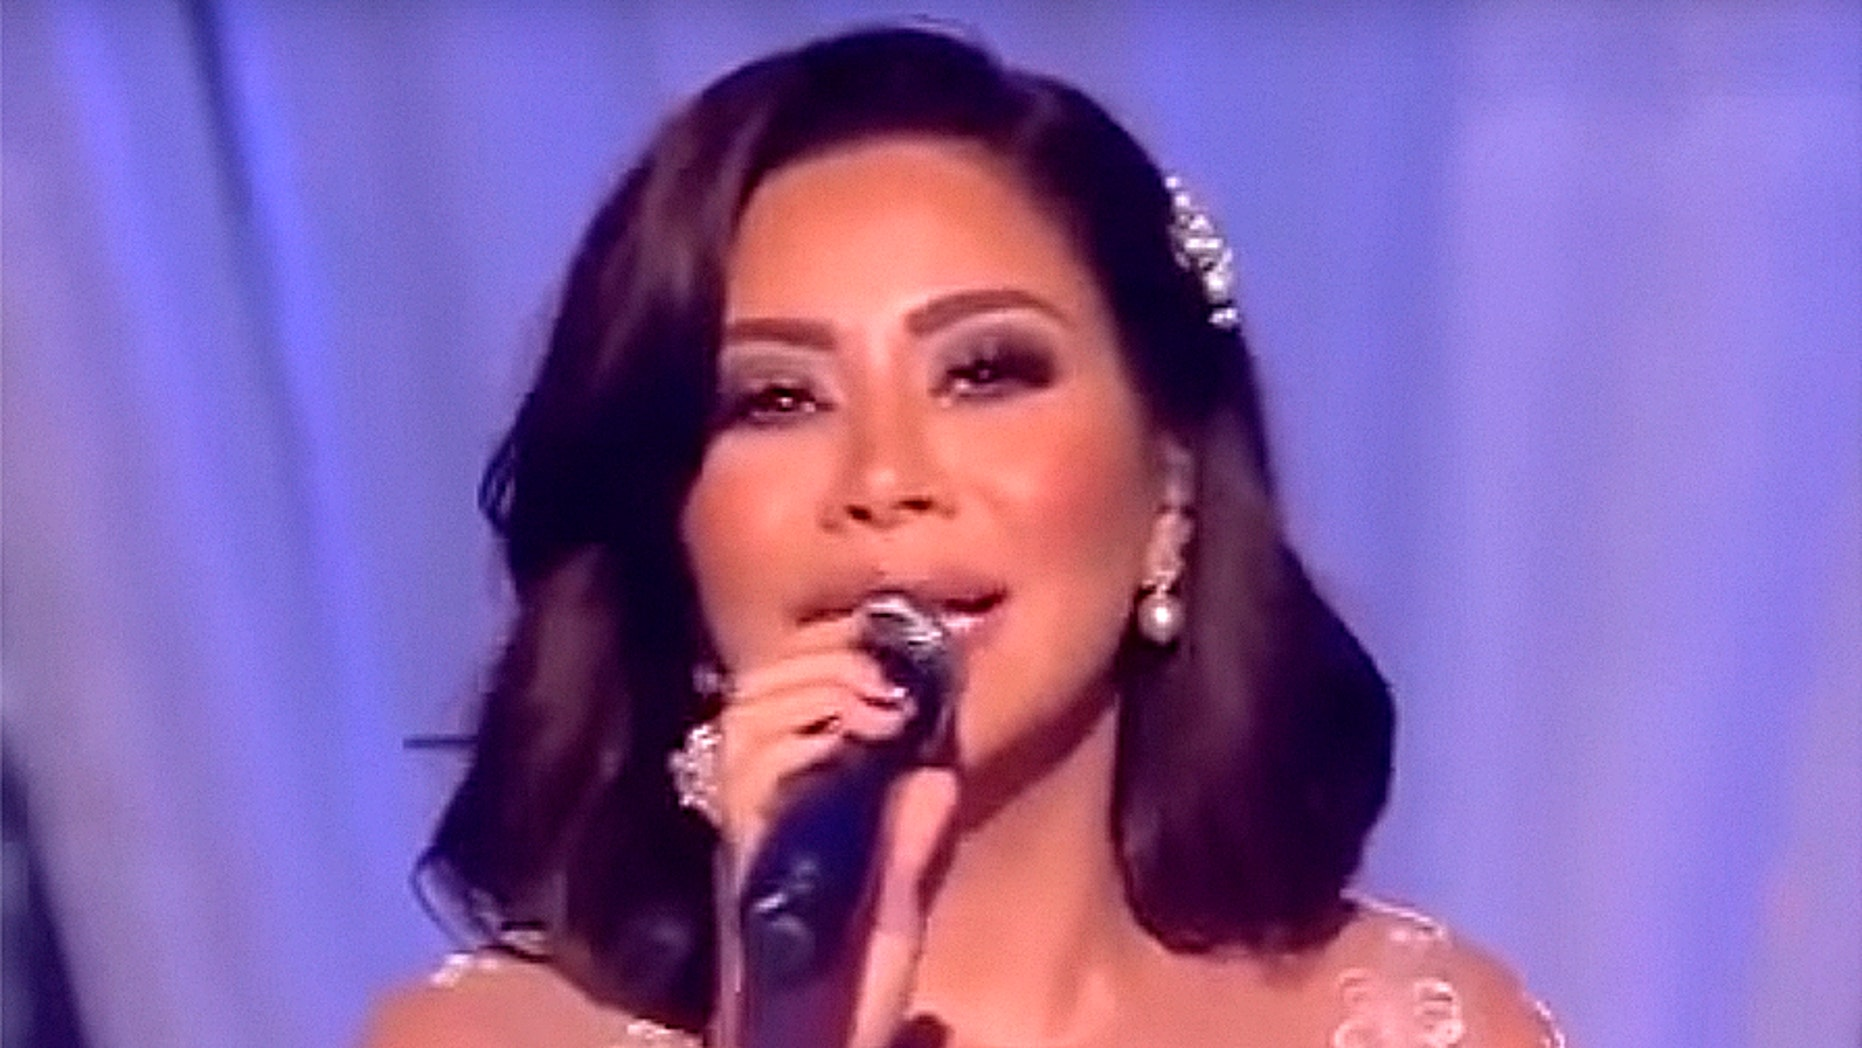 Egyptian singer and 'The Voice' star Sherine Abdel-Wahab